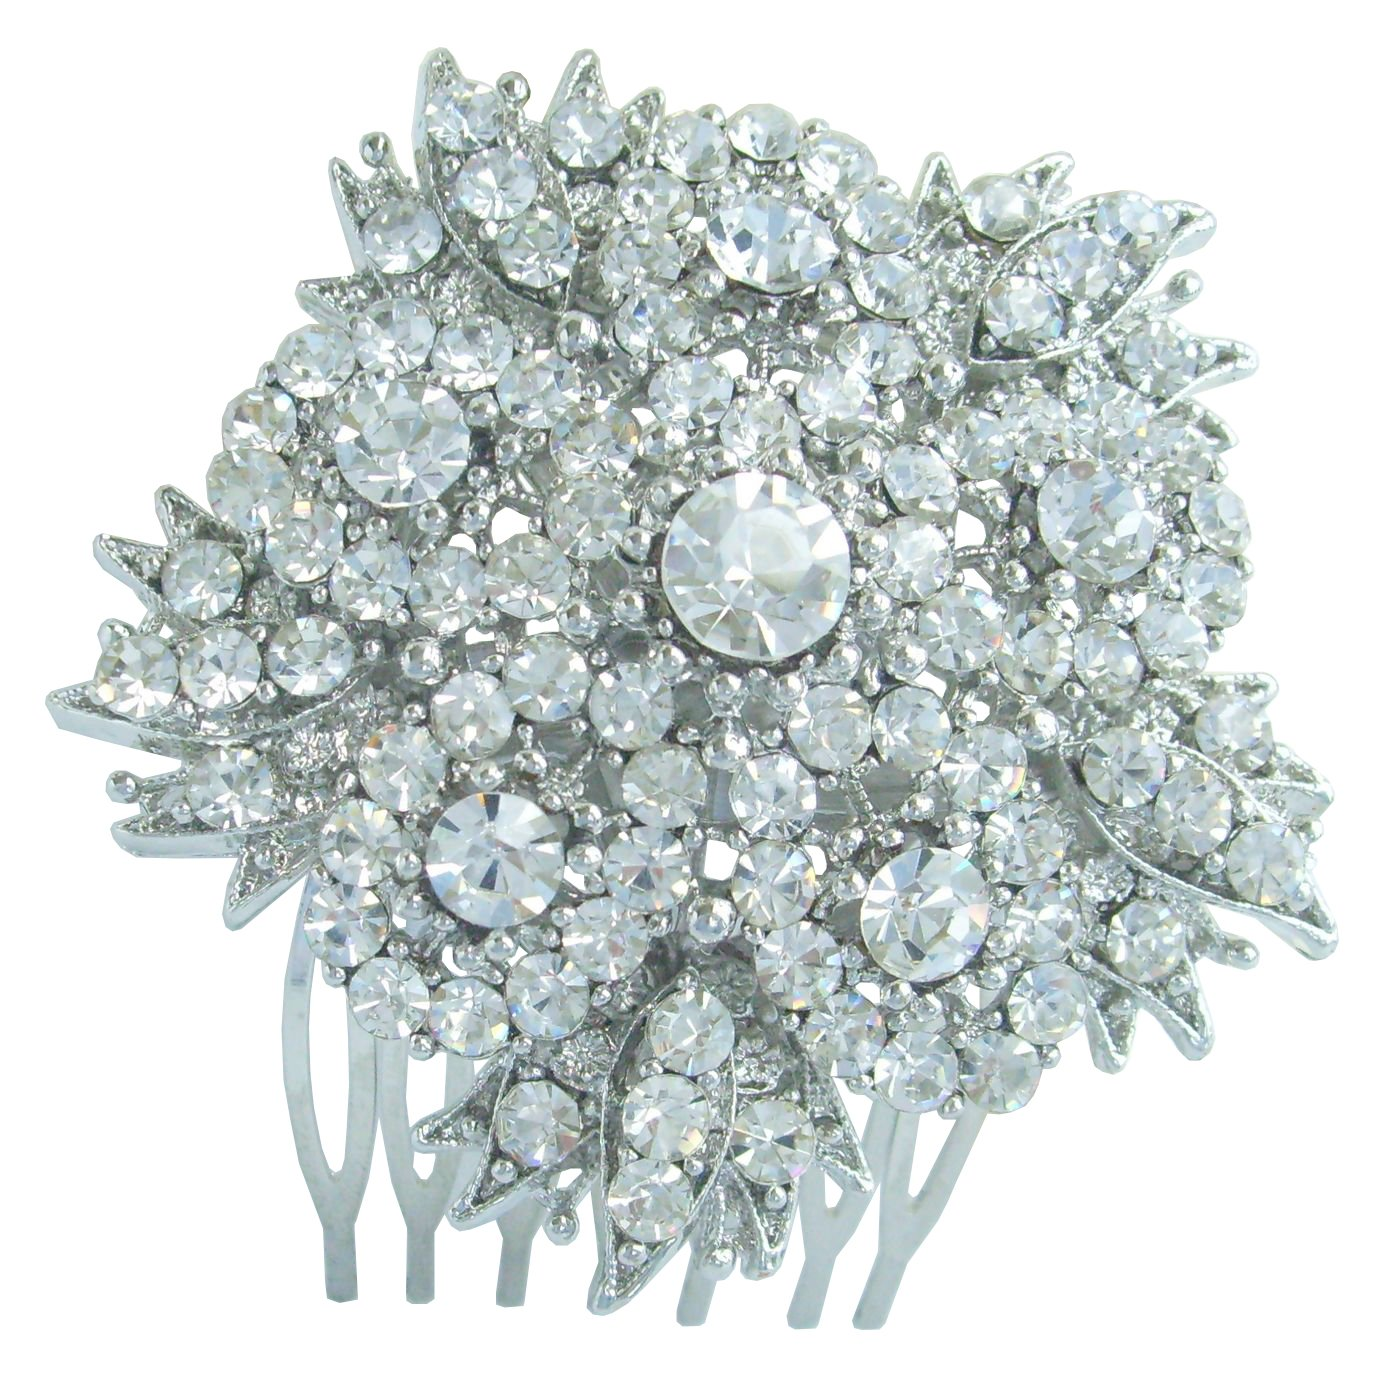 Sindary Bridal Headpiece 2.56'' Wedding Flower Hair Comb Silver Tone Clear Rhinestone Crystal HZ3814